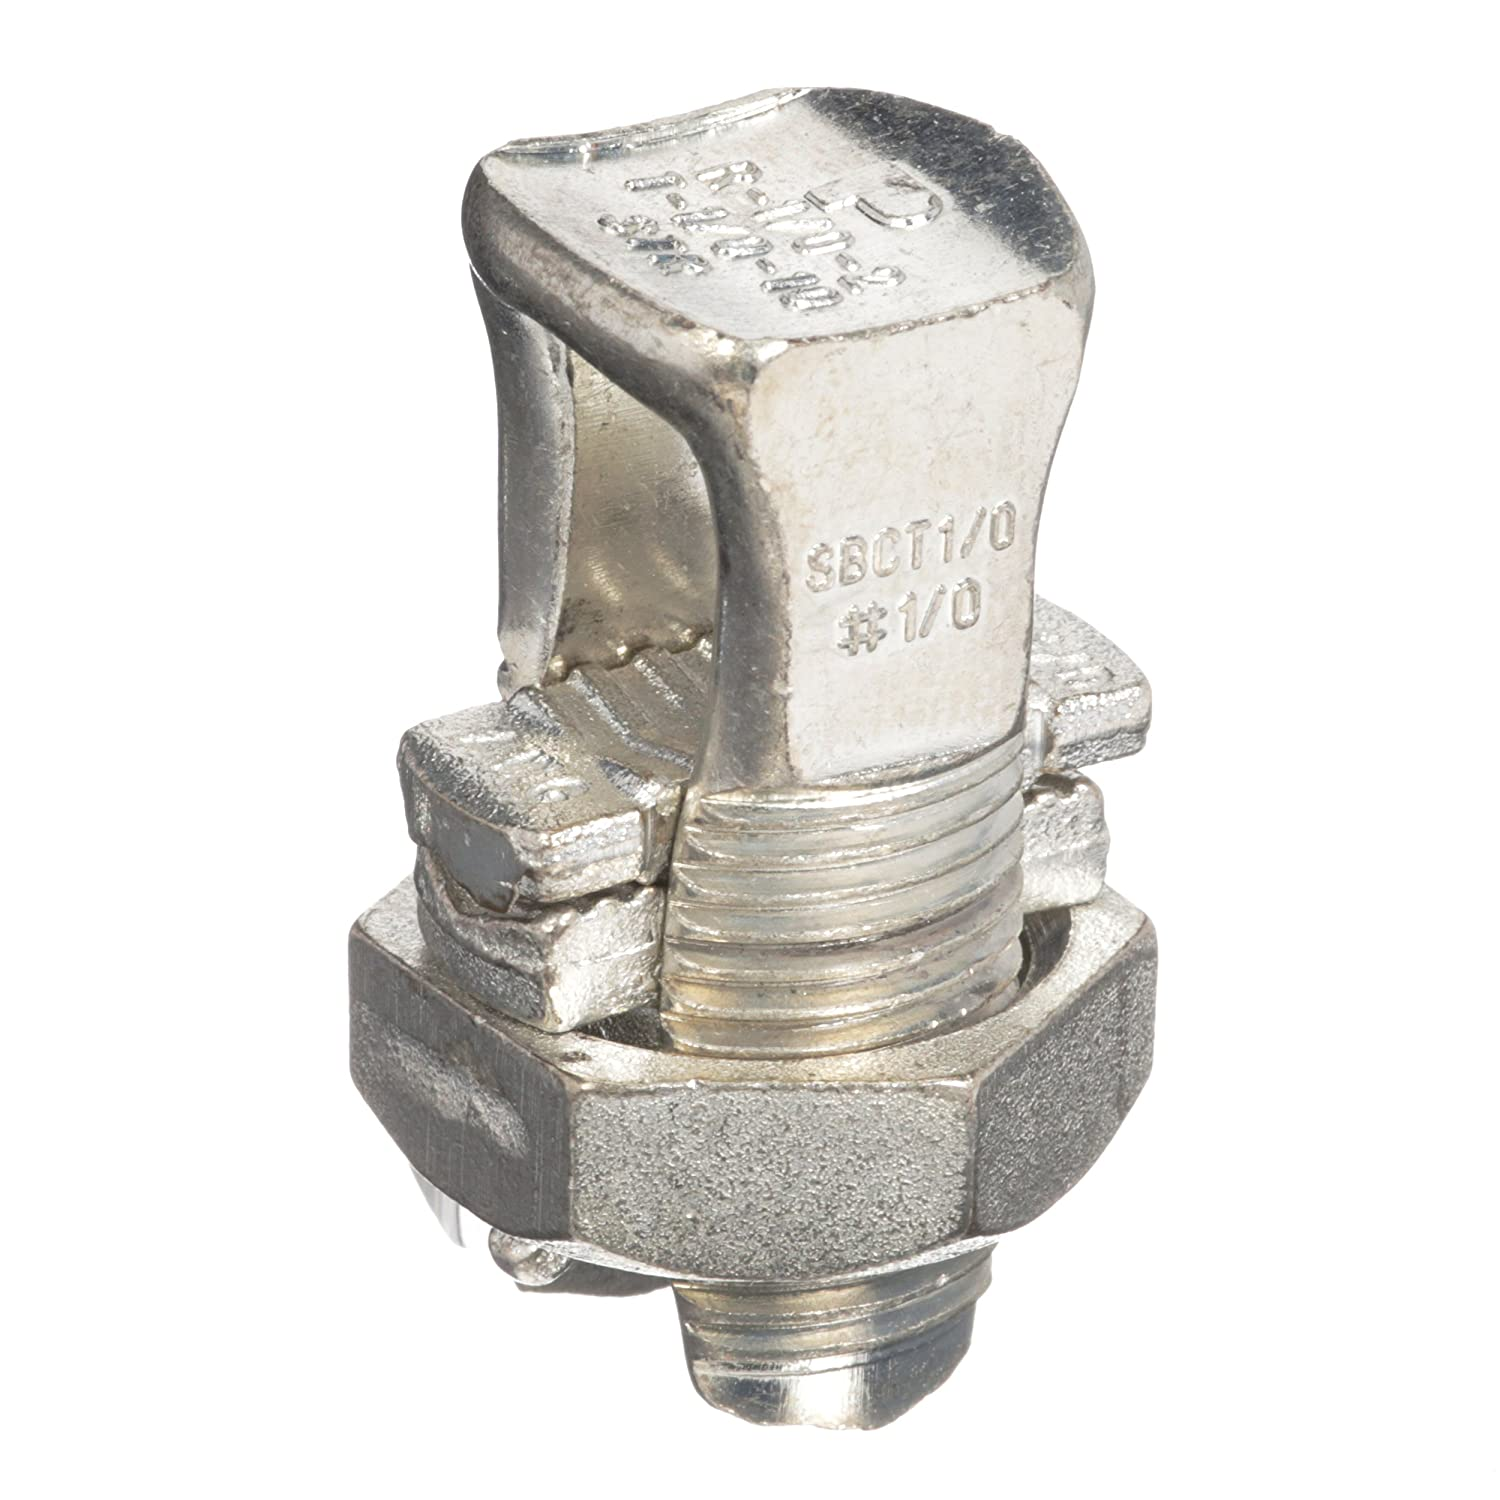 #8 STR Min//#6 SOL Max For Equal Run And Tap Copper Tin-Plated #14 STR Min Tap With One Max Run 1.06 Length 0.41 Head Width 0.62 Nut Width 1.06 Length Copper and Aluminum Code Conductor 0.41 Head Width Panduit SBCT8-C Split Nut 0.62 Nut Width